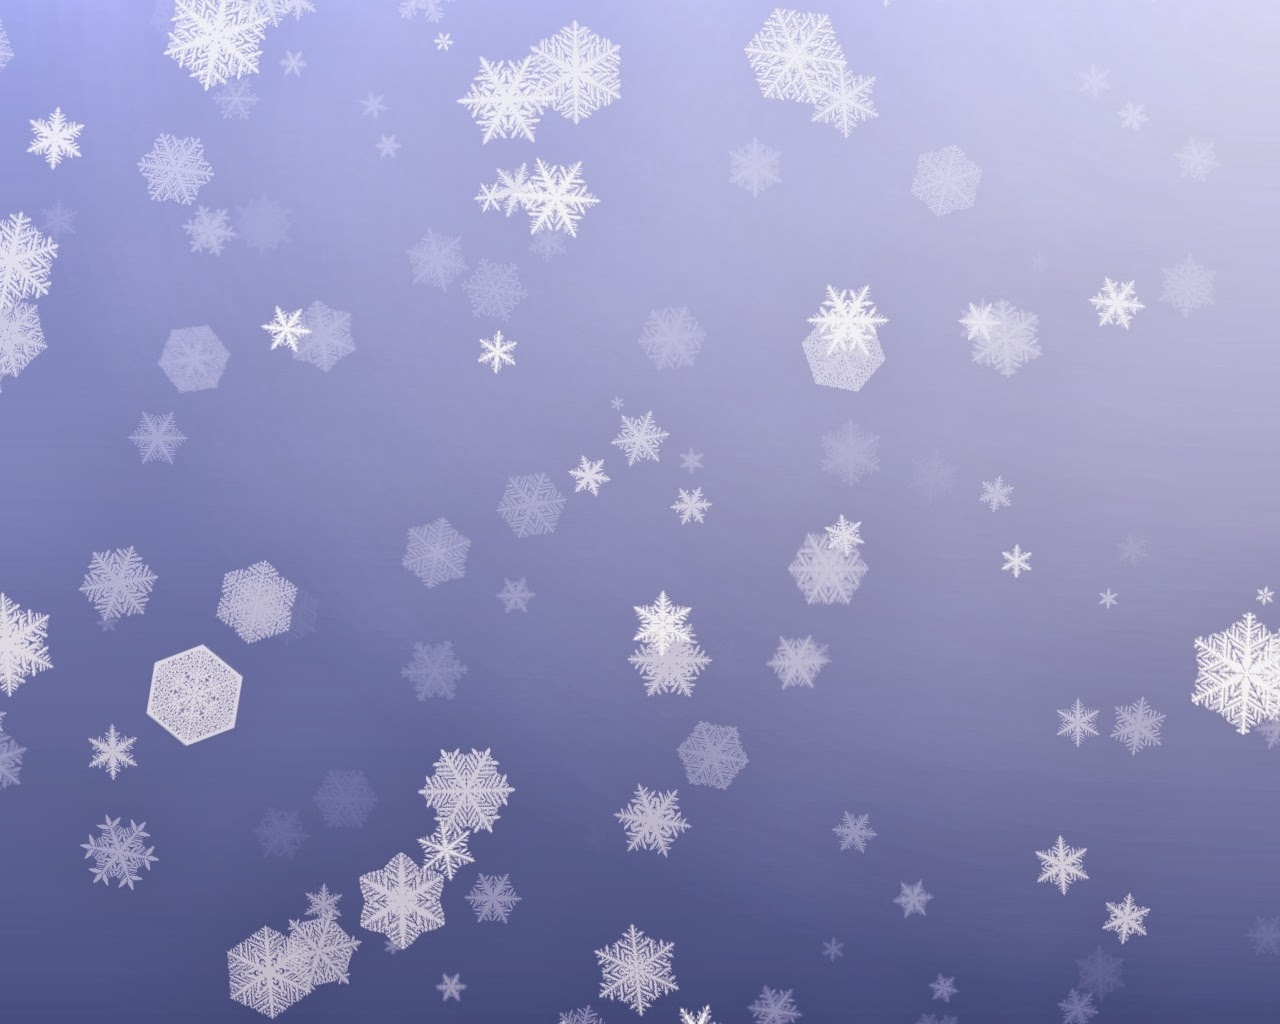 snowflake images hd free #1628